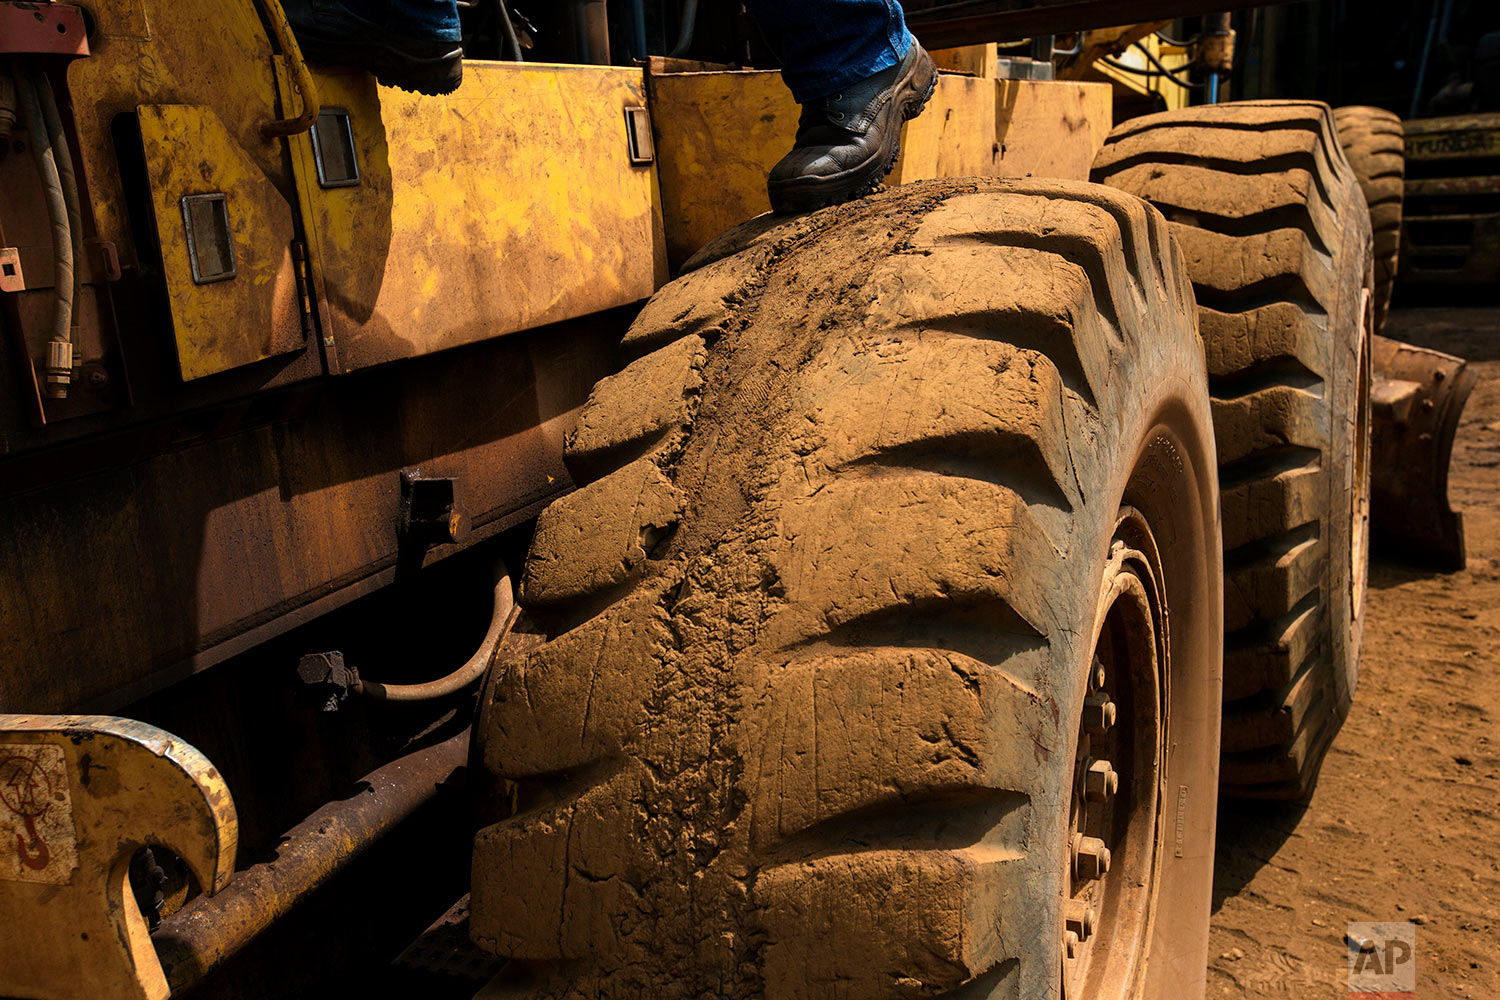 In this Nov. 4, 2017 photo, a worker repairs a truck at workshop at Ferrominera Orinoco, in Ciudad Piar, Bolivar state, Venezuela. The massive truc runs on a tire so badly worn that strips of rubber tread are missing. (AP Photo/Rodrigo Abd)